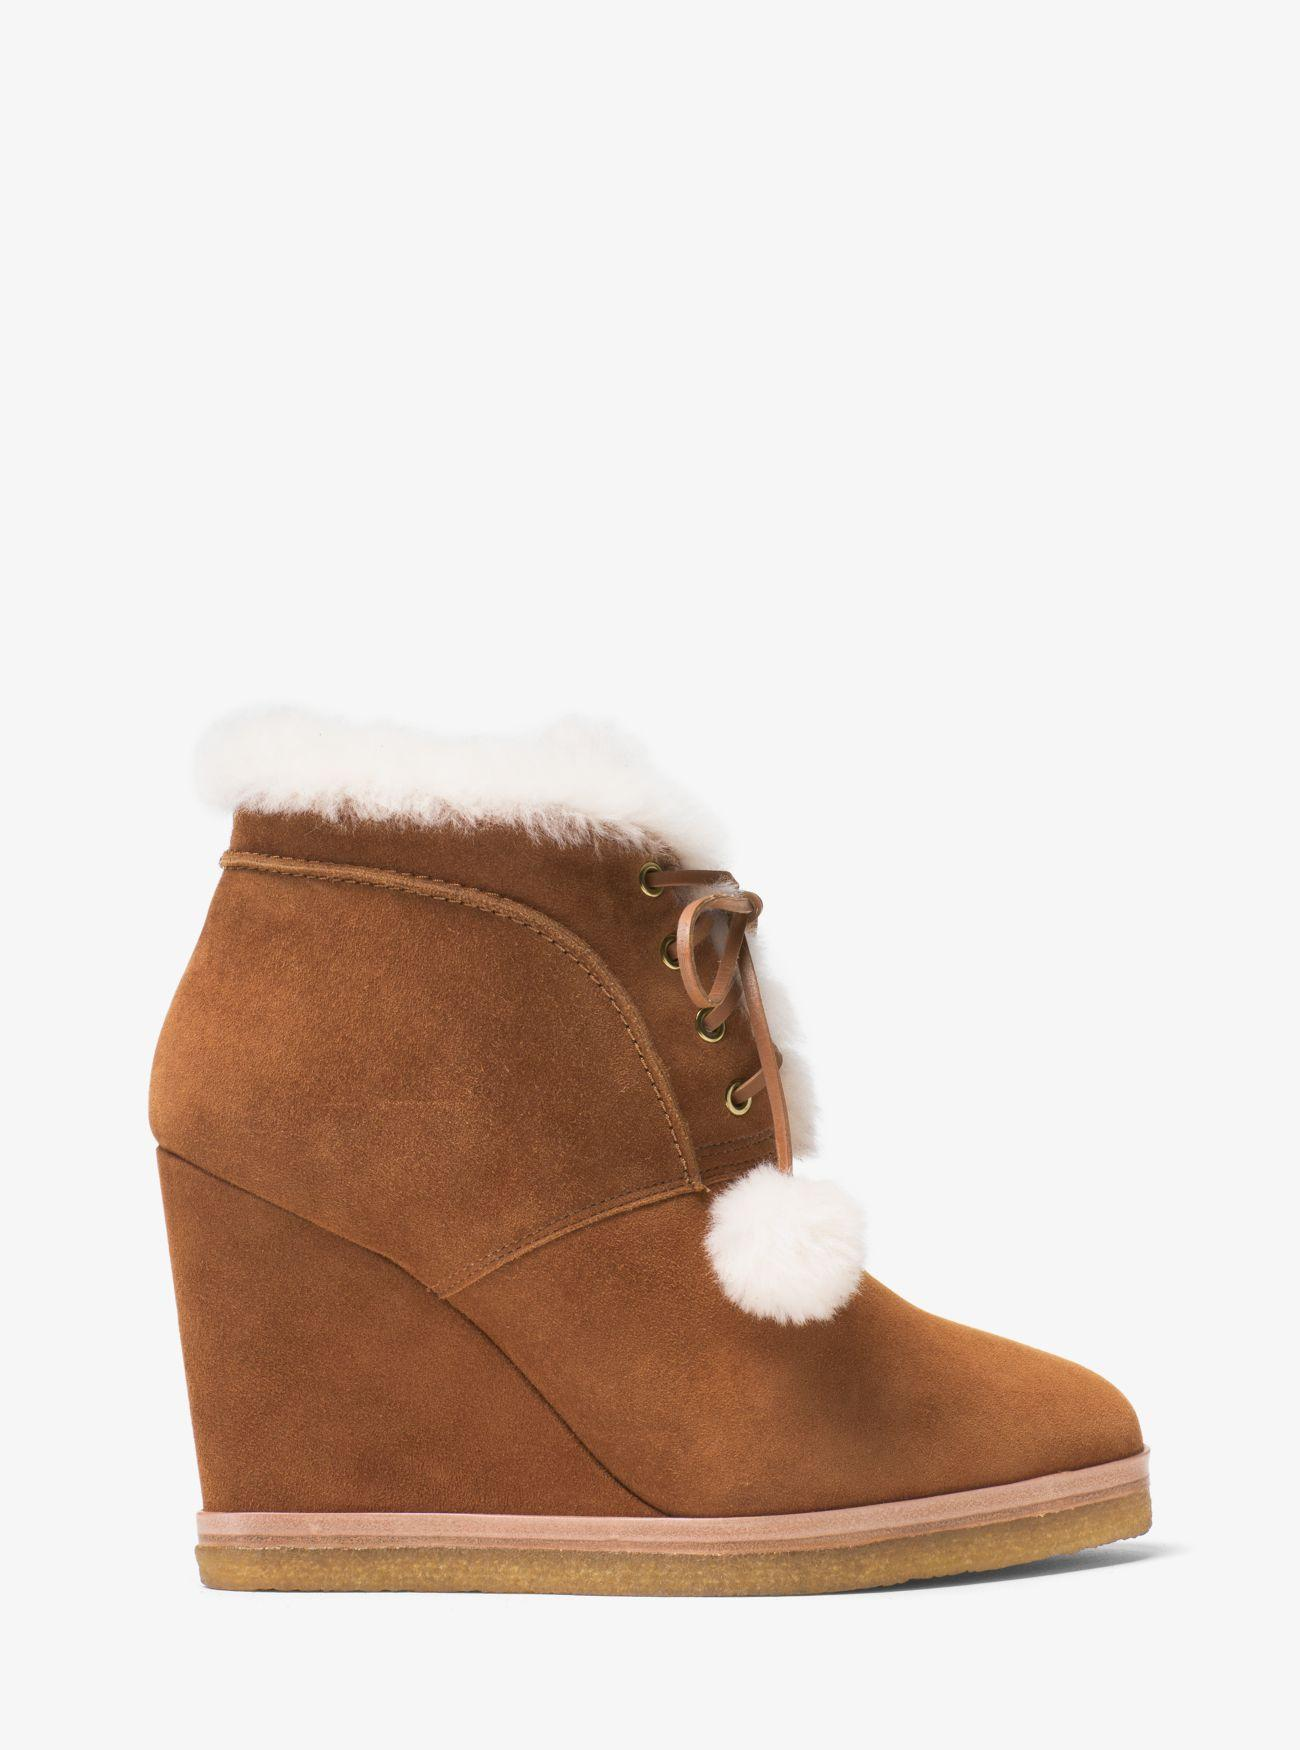 Michael Kors Chadwick Suede And Shearling Wedge Boot in Brown